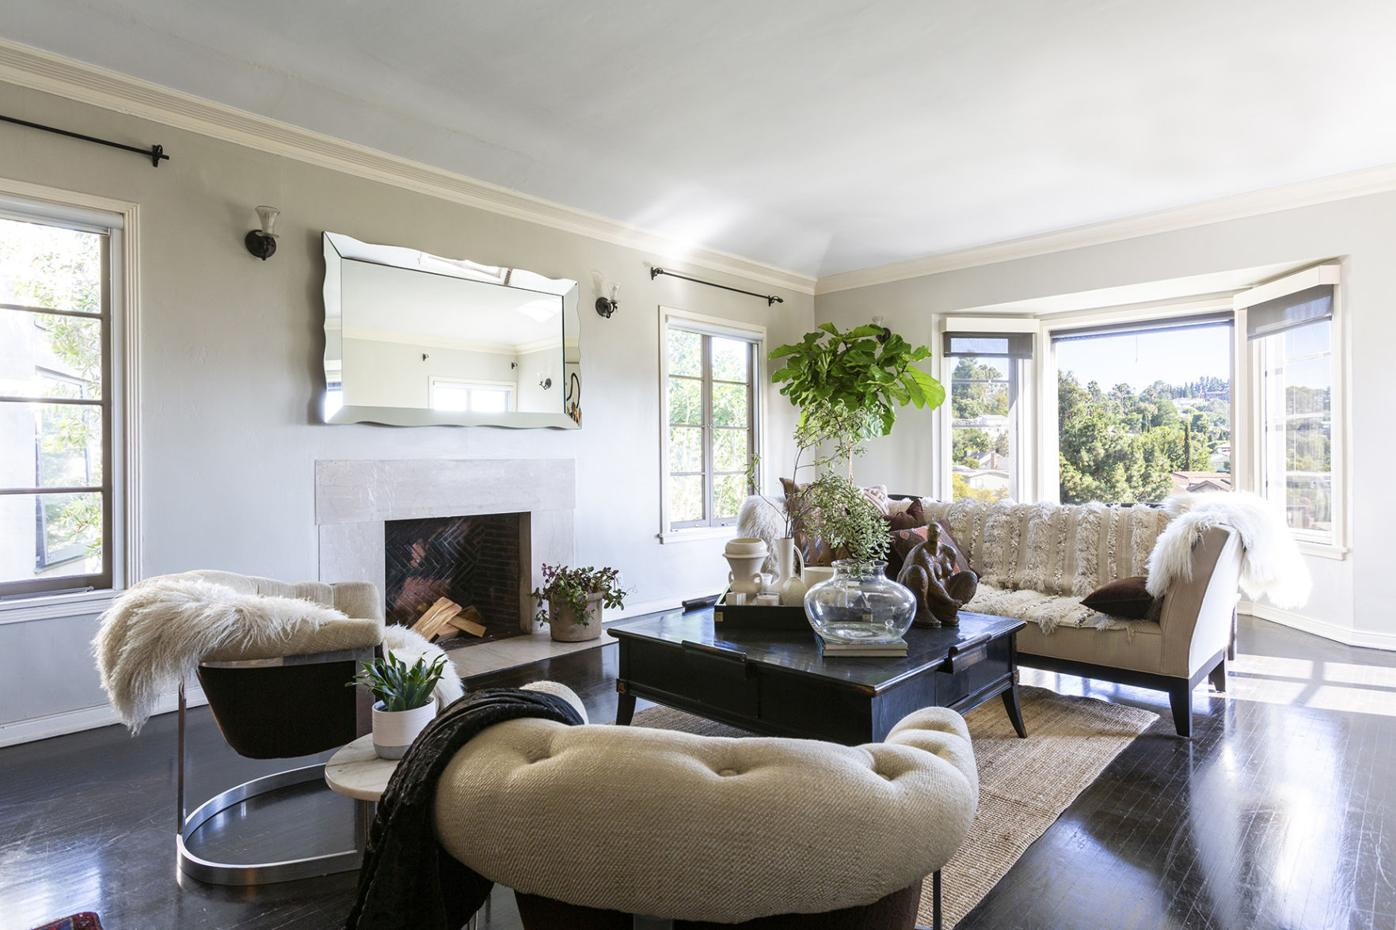 Photo: New Listings in Silver Lake and Echo Park by the C+K Wisner Real Estate Team at Compass